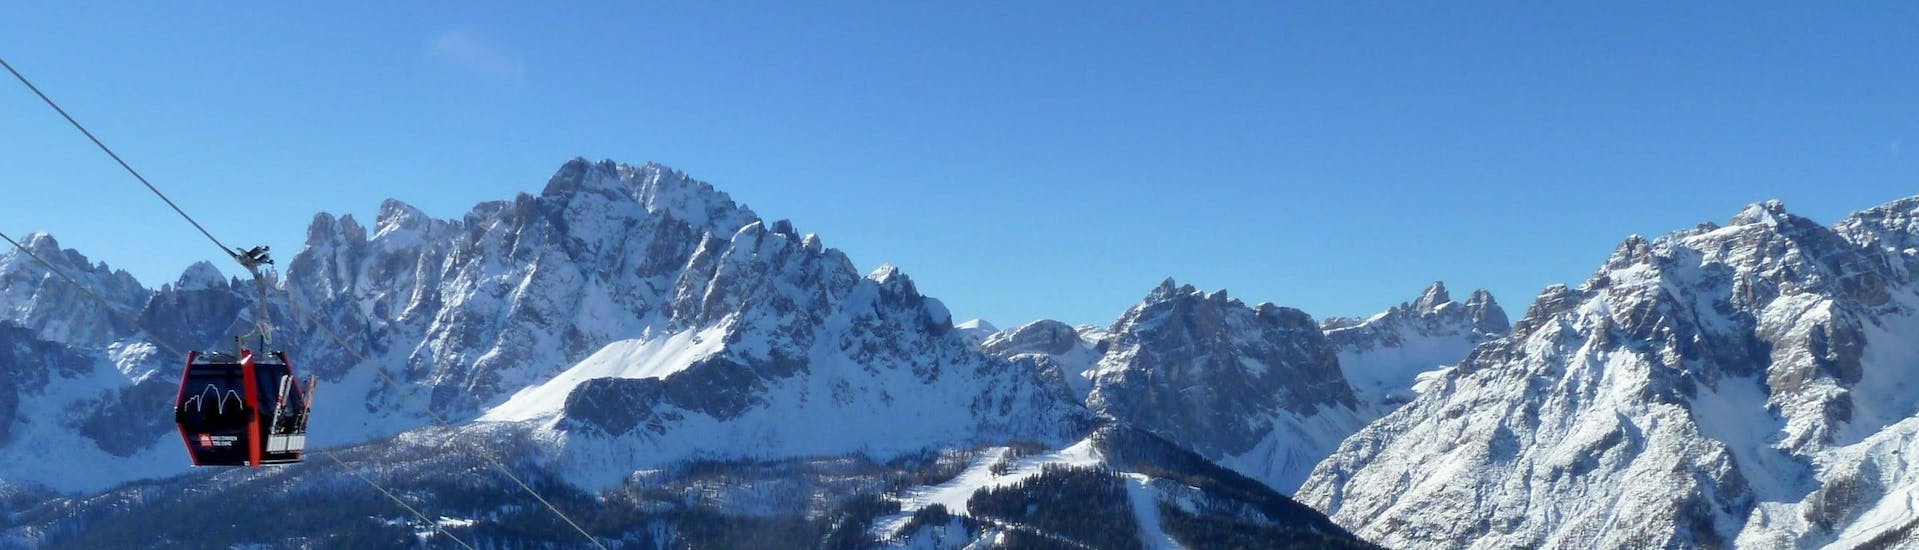 View over the sunny mountain landscape while learning to ski with the ski schools in Dobbiaco.